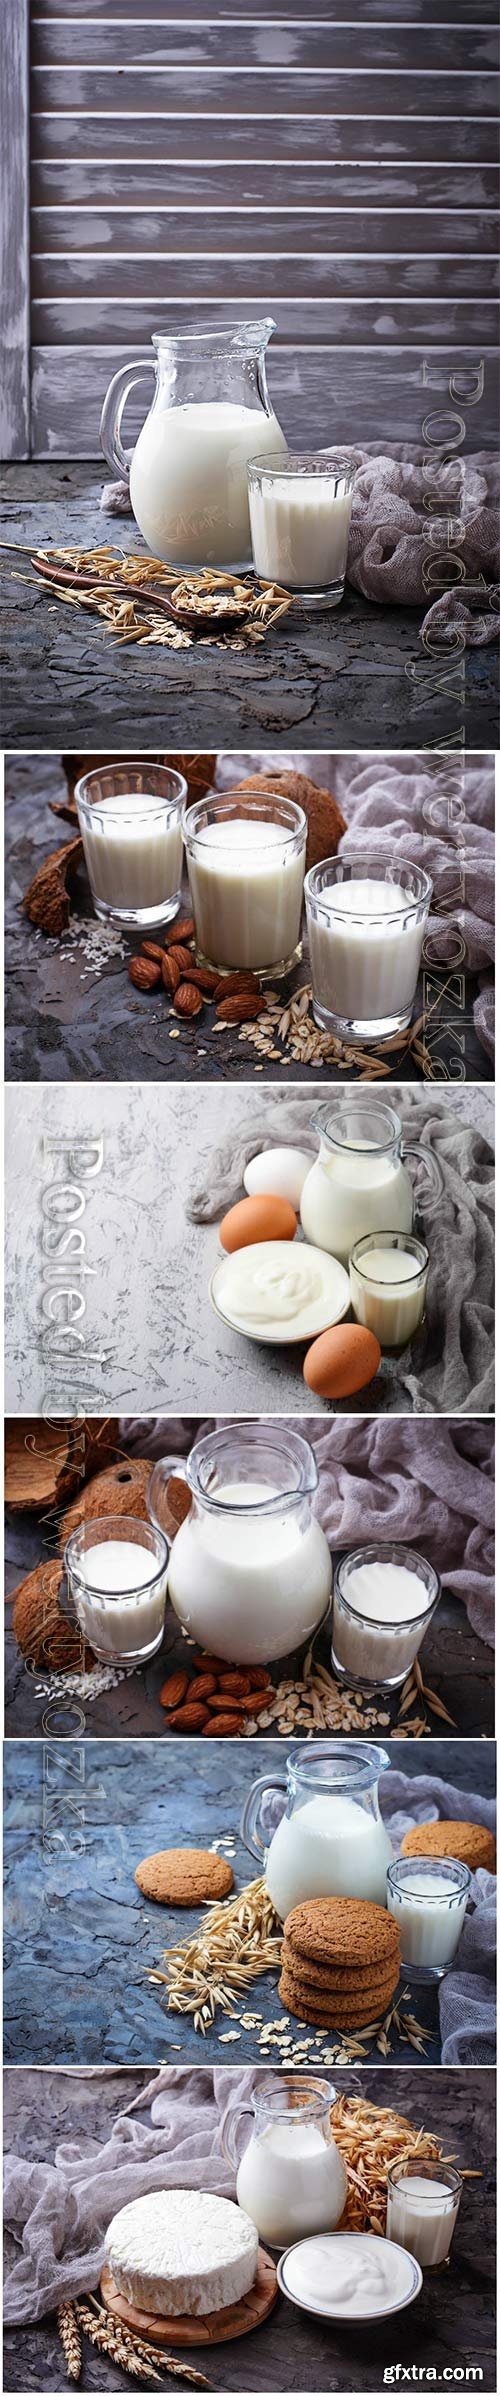 Milk, sour cream and eggs